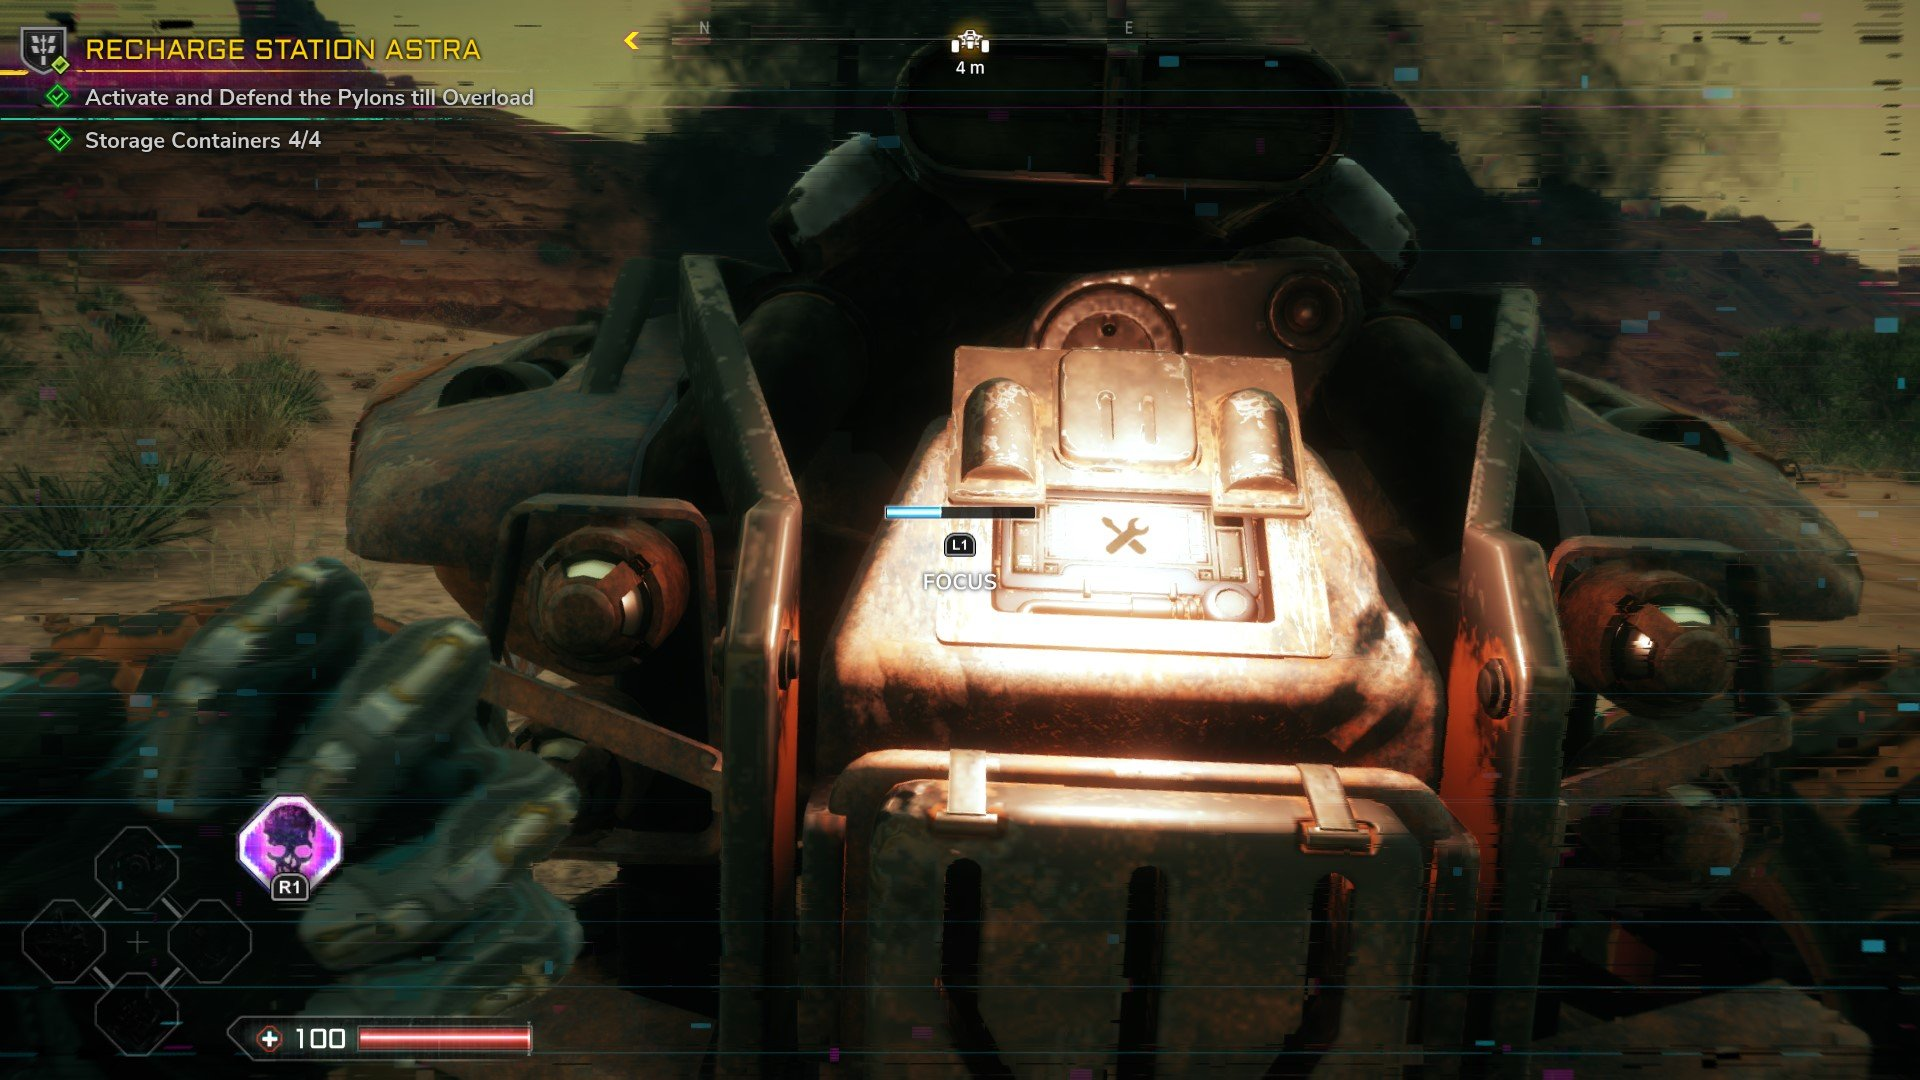 Hold L1 or LB to Focus on your vehicle and repair damage in Rage 2.